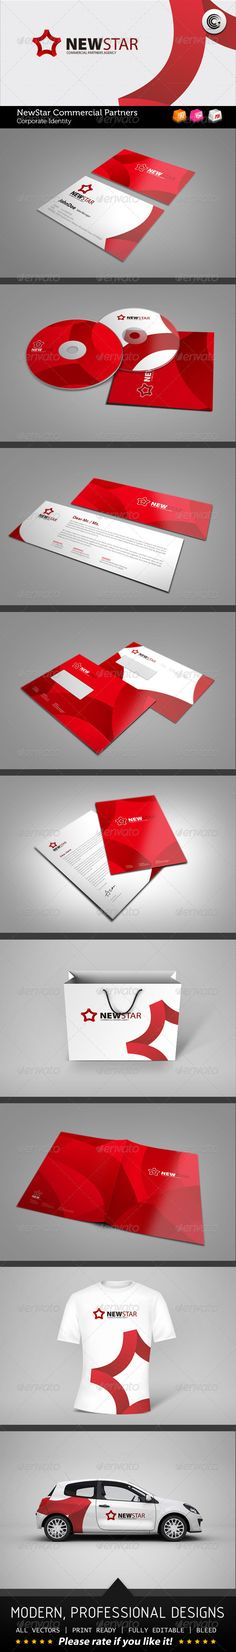 New Star Commercial Partners Corporate Identity  #GraphicRiver         File Information: —-—-—-—-—- 1 Business Card(inch): 3.5×2 2 Compact Disc: 120×120mm 1 CD Packag:125×125mm 1 Compliment Card: Half A5 2 Envelope: C5 1 Letter: A4 1 Corporate Folder: A3 1 Shopping Bag:320×260×90mm Colors: CMYK  bleed lines included Vectors shape AI(CS5), EPS and PDF  Font used: —-—-—-—-——- Myriad Pro-> .myfonts /fonts/adobe/myriad/     Created: 15August12 GraphicsFilesIncluded: VectorEPS #AIIllustrator…